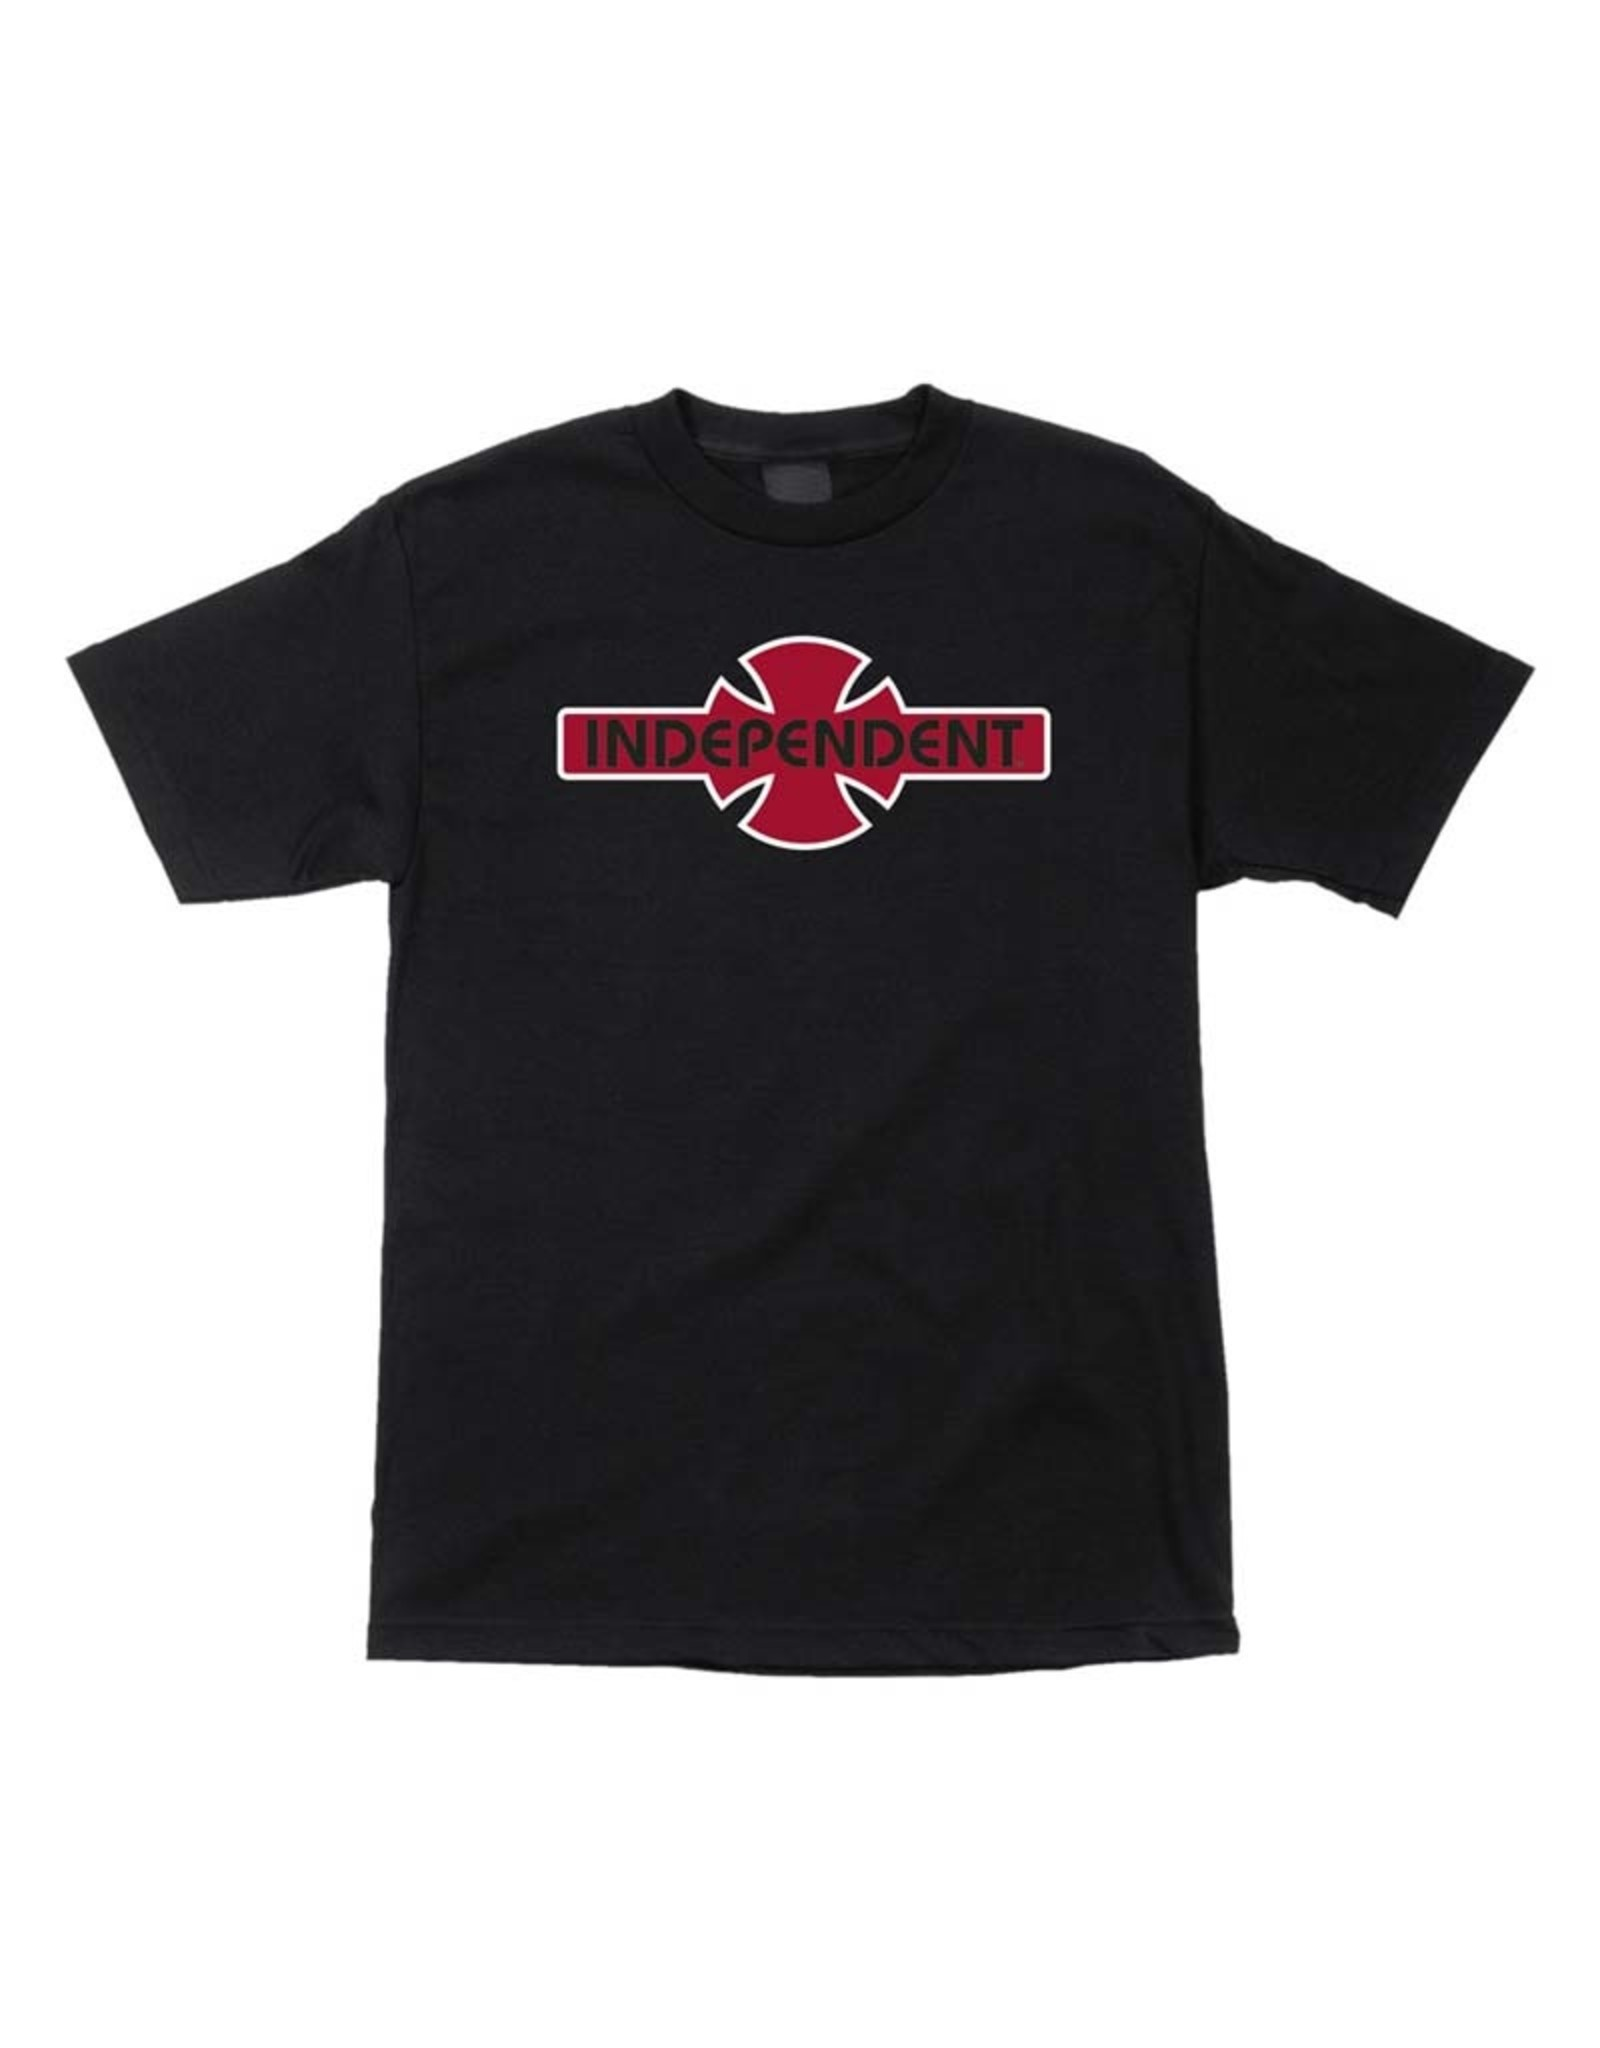 INDEPENDENT INDEPENDENT - O.G.B.C S/S - BLACK -